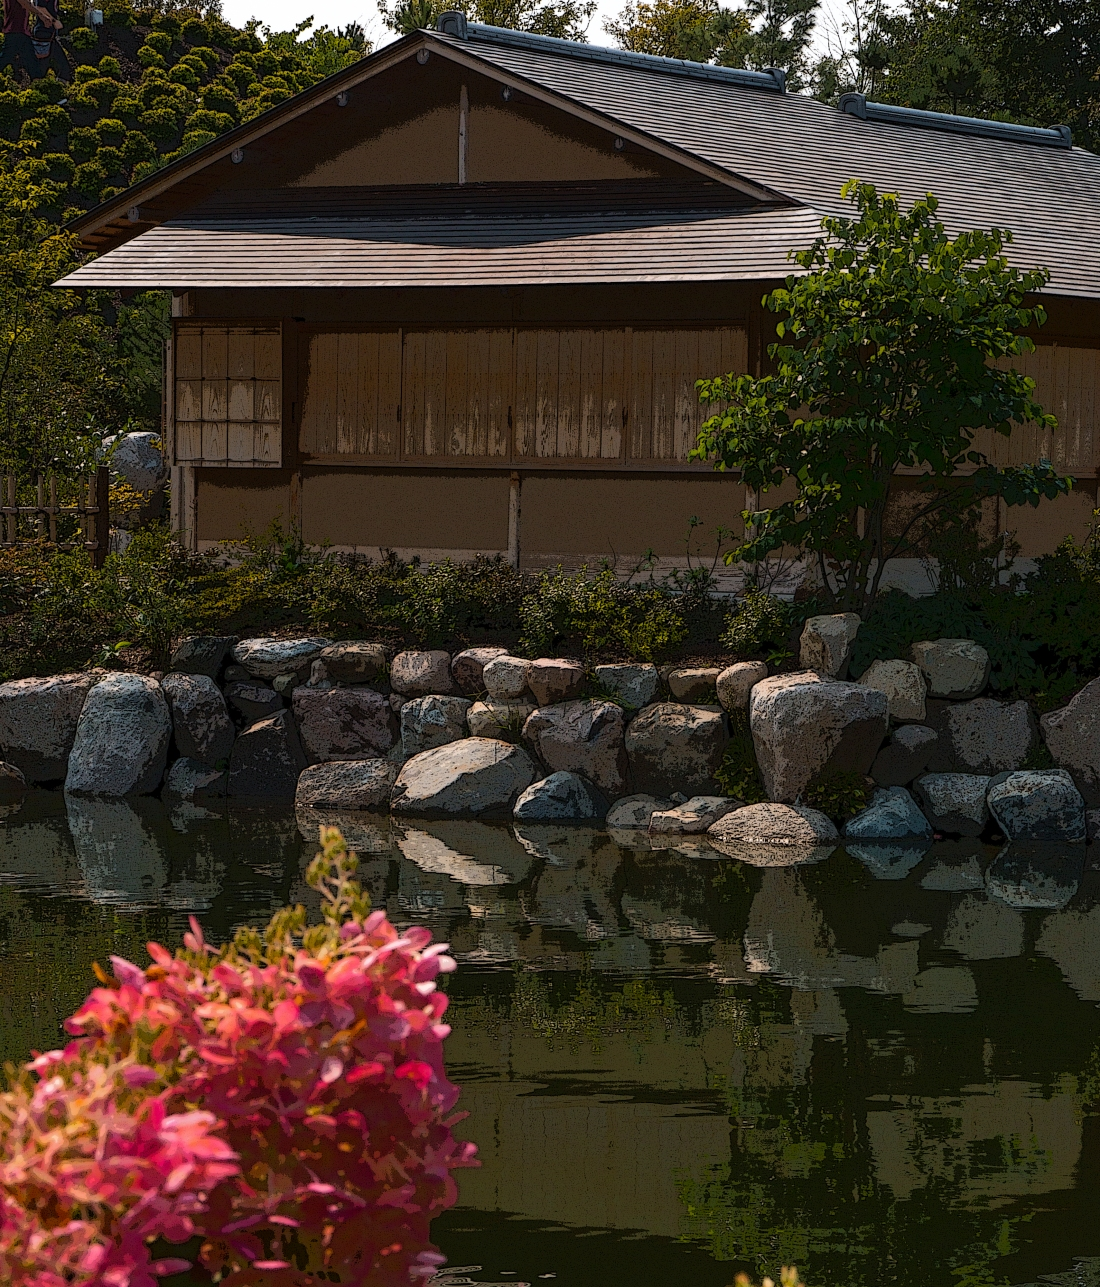 Japanese Tea House. Meijer Gardens. Shot with a Canon 70D.